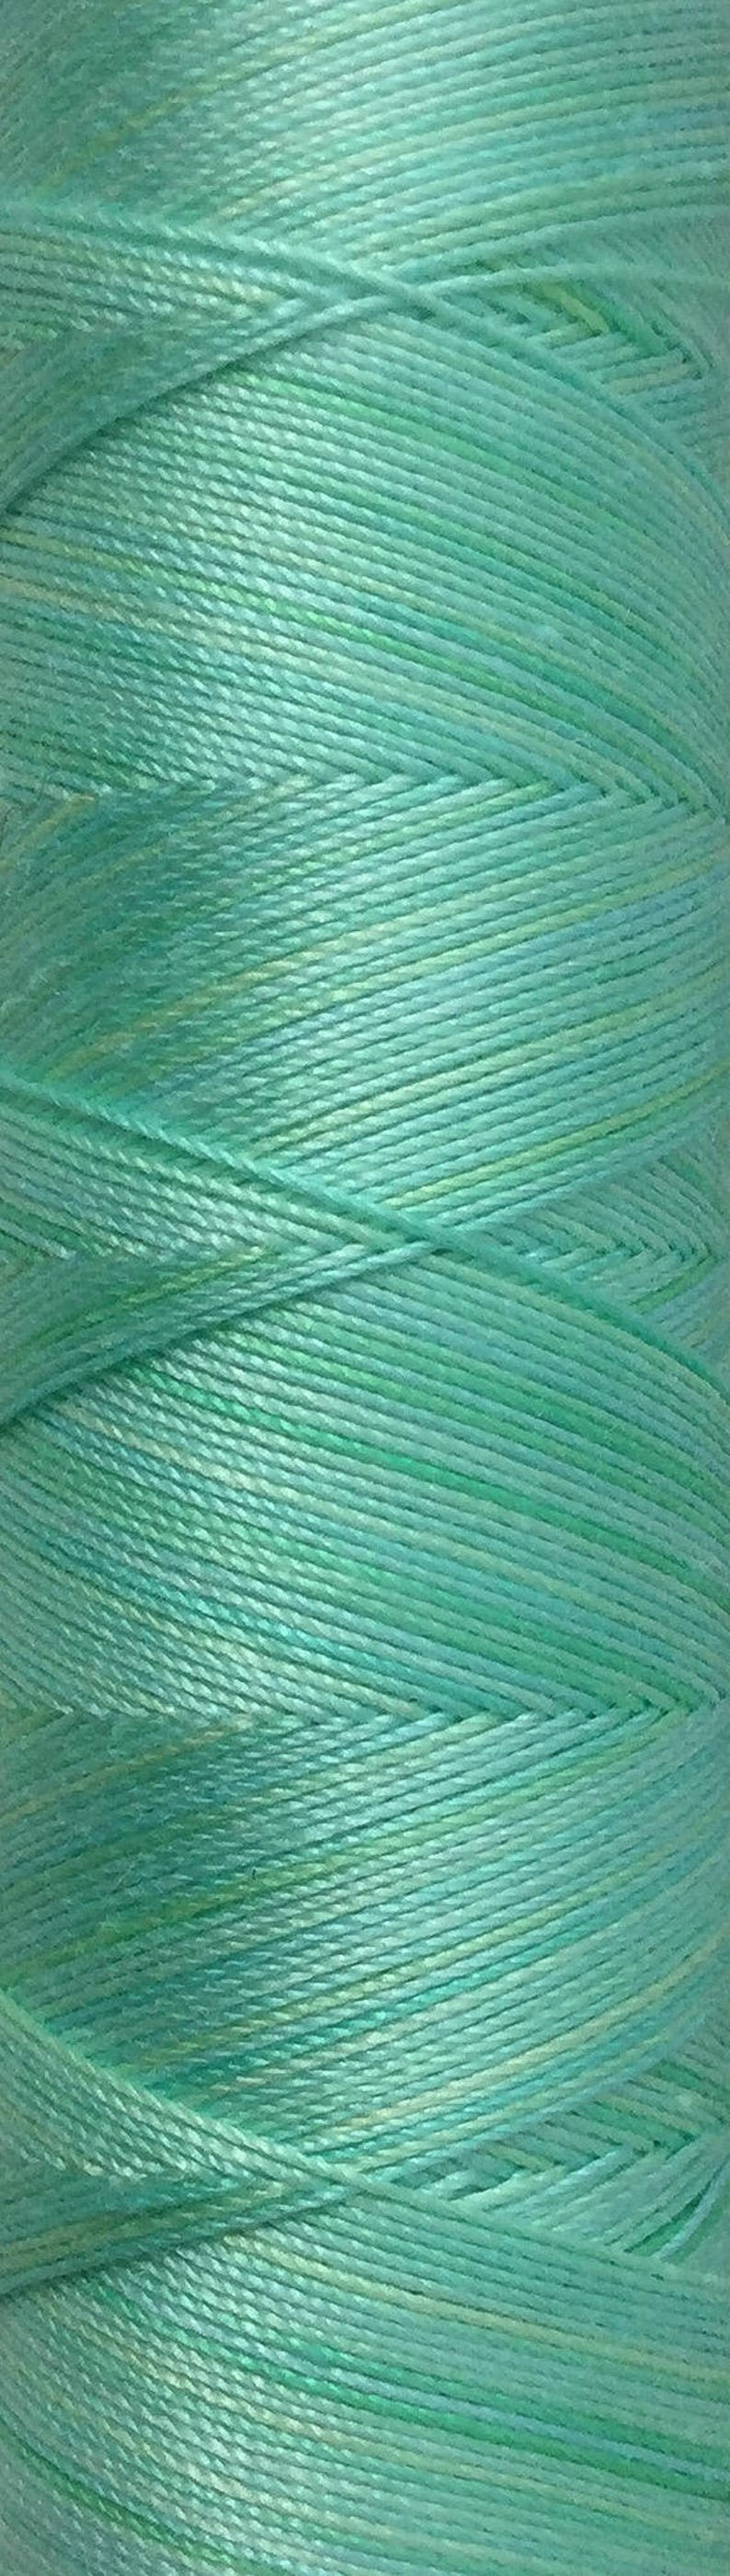 No.25 Spearmint Hand Dyed Cotton Machine Thread Individual image 0